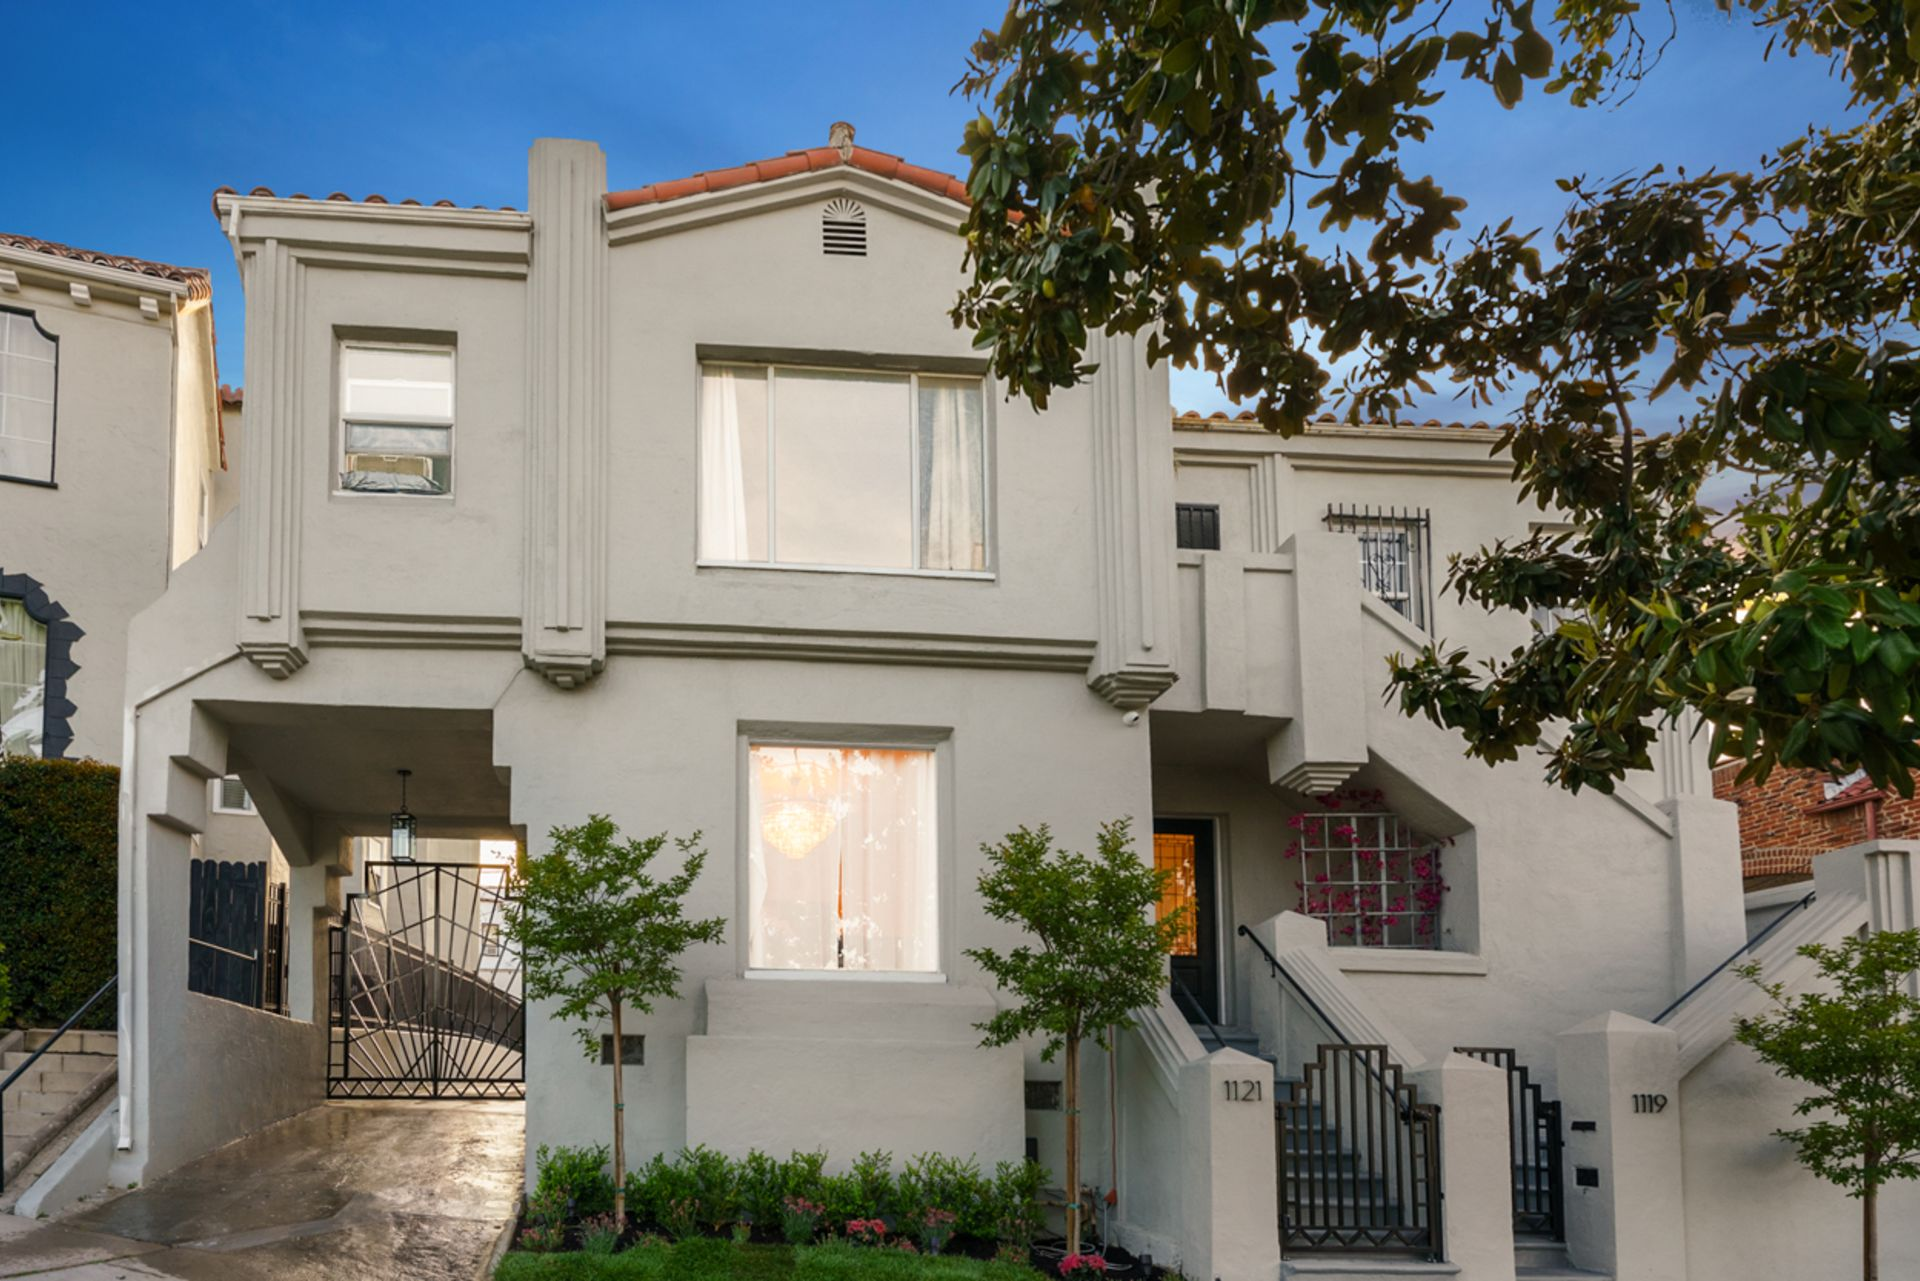 Miracle Mile: Gorgeous Art Deco Spanish Duplex w/ an Enchanting Patio!